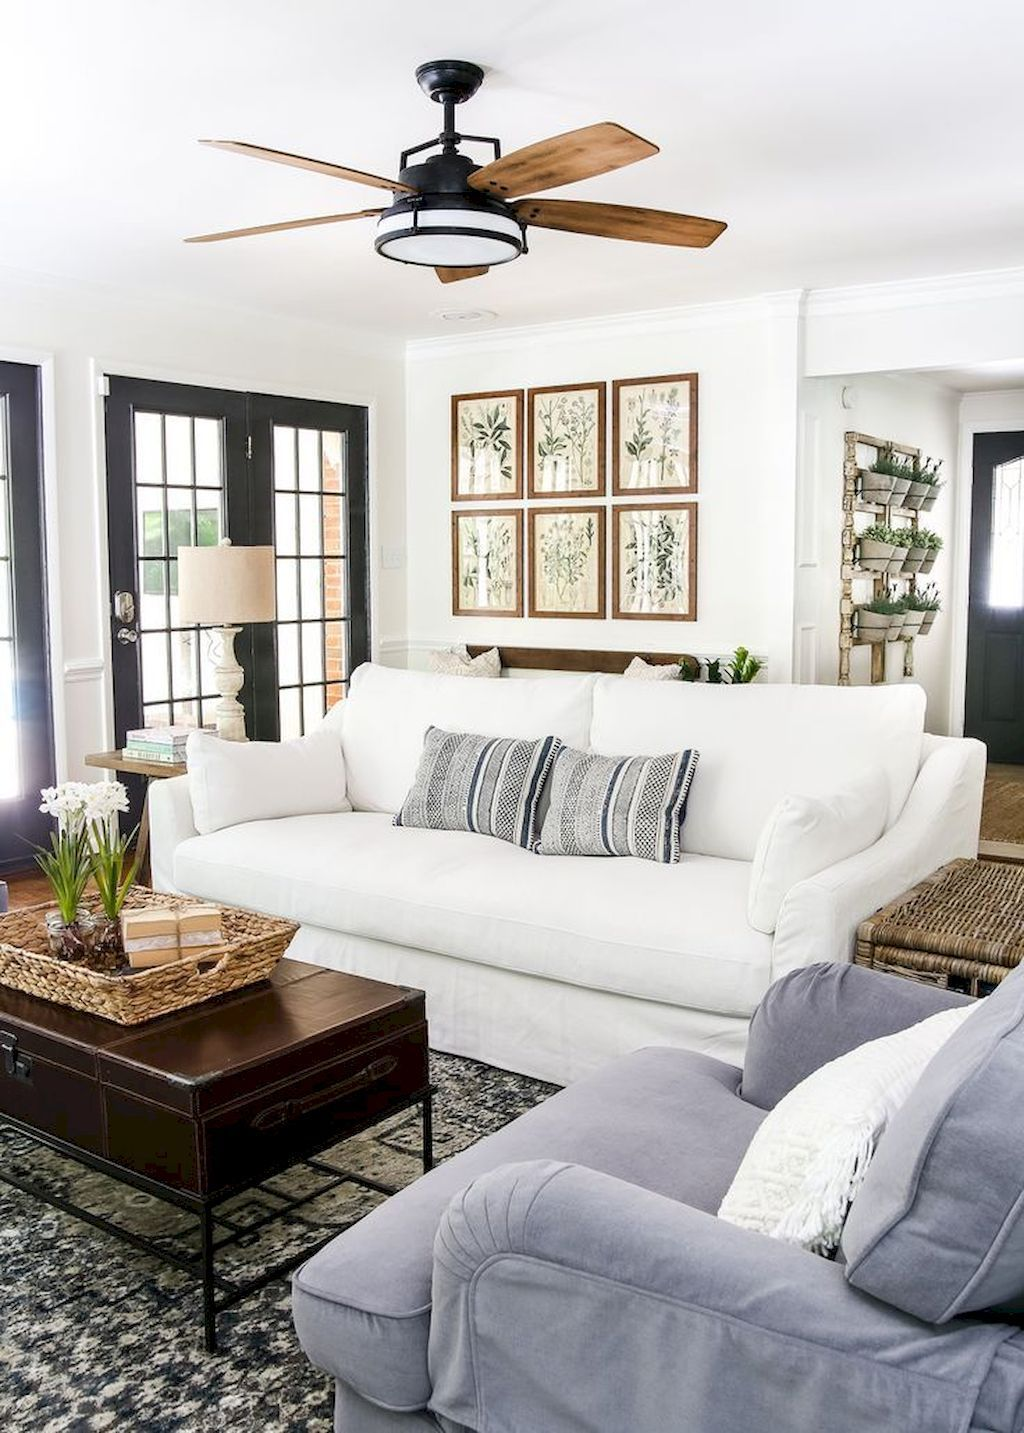 Stunning French Country Living Room Decor Ideas (53)